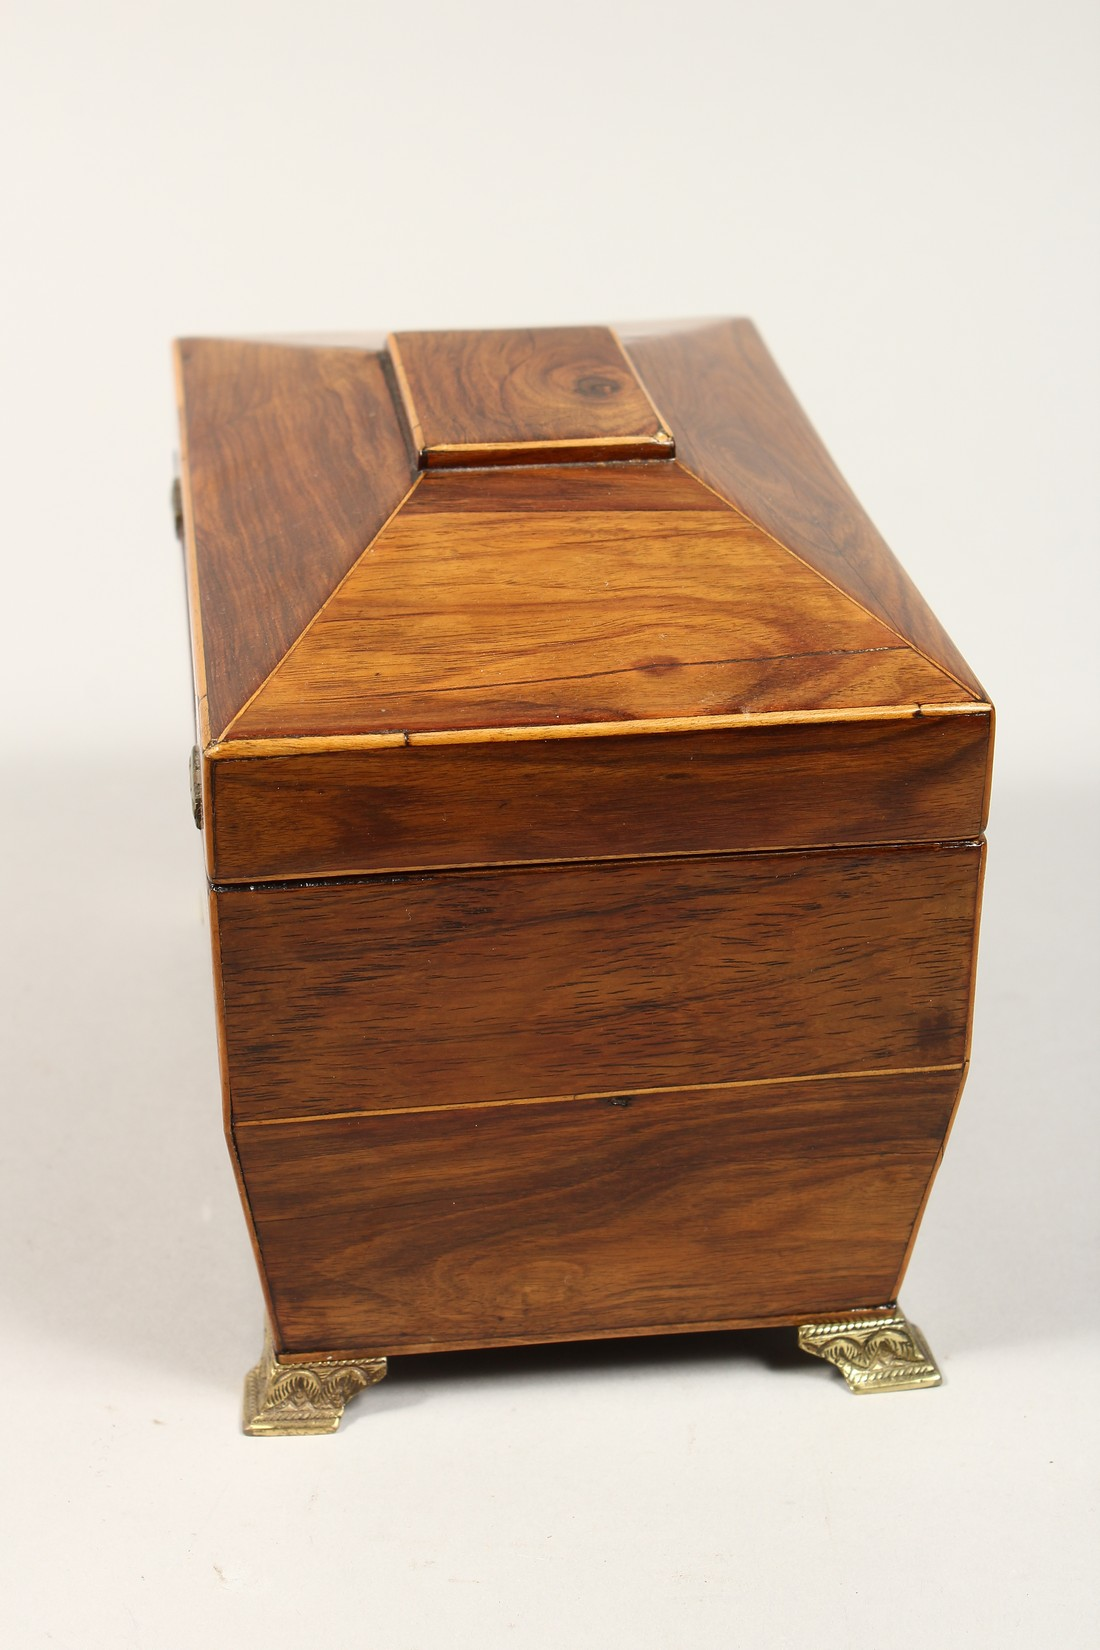 A REGENCY ROSEWOOD DOMED TOP TWO DIVISION TEA CADDY with iron escutcheon on brass bracket feet. 7. - Image 4 of 7